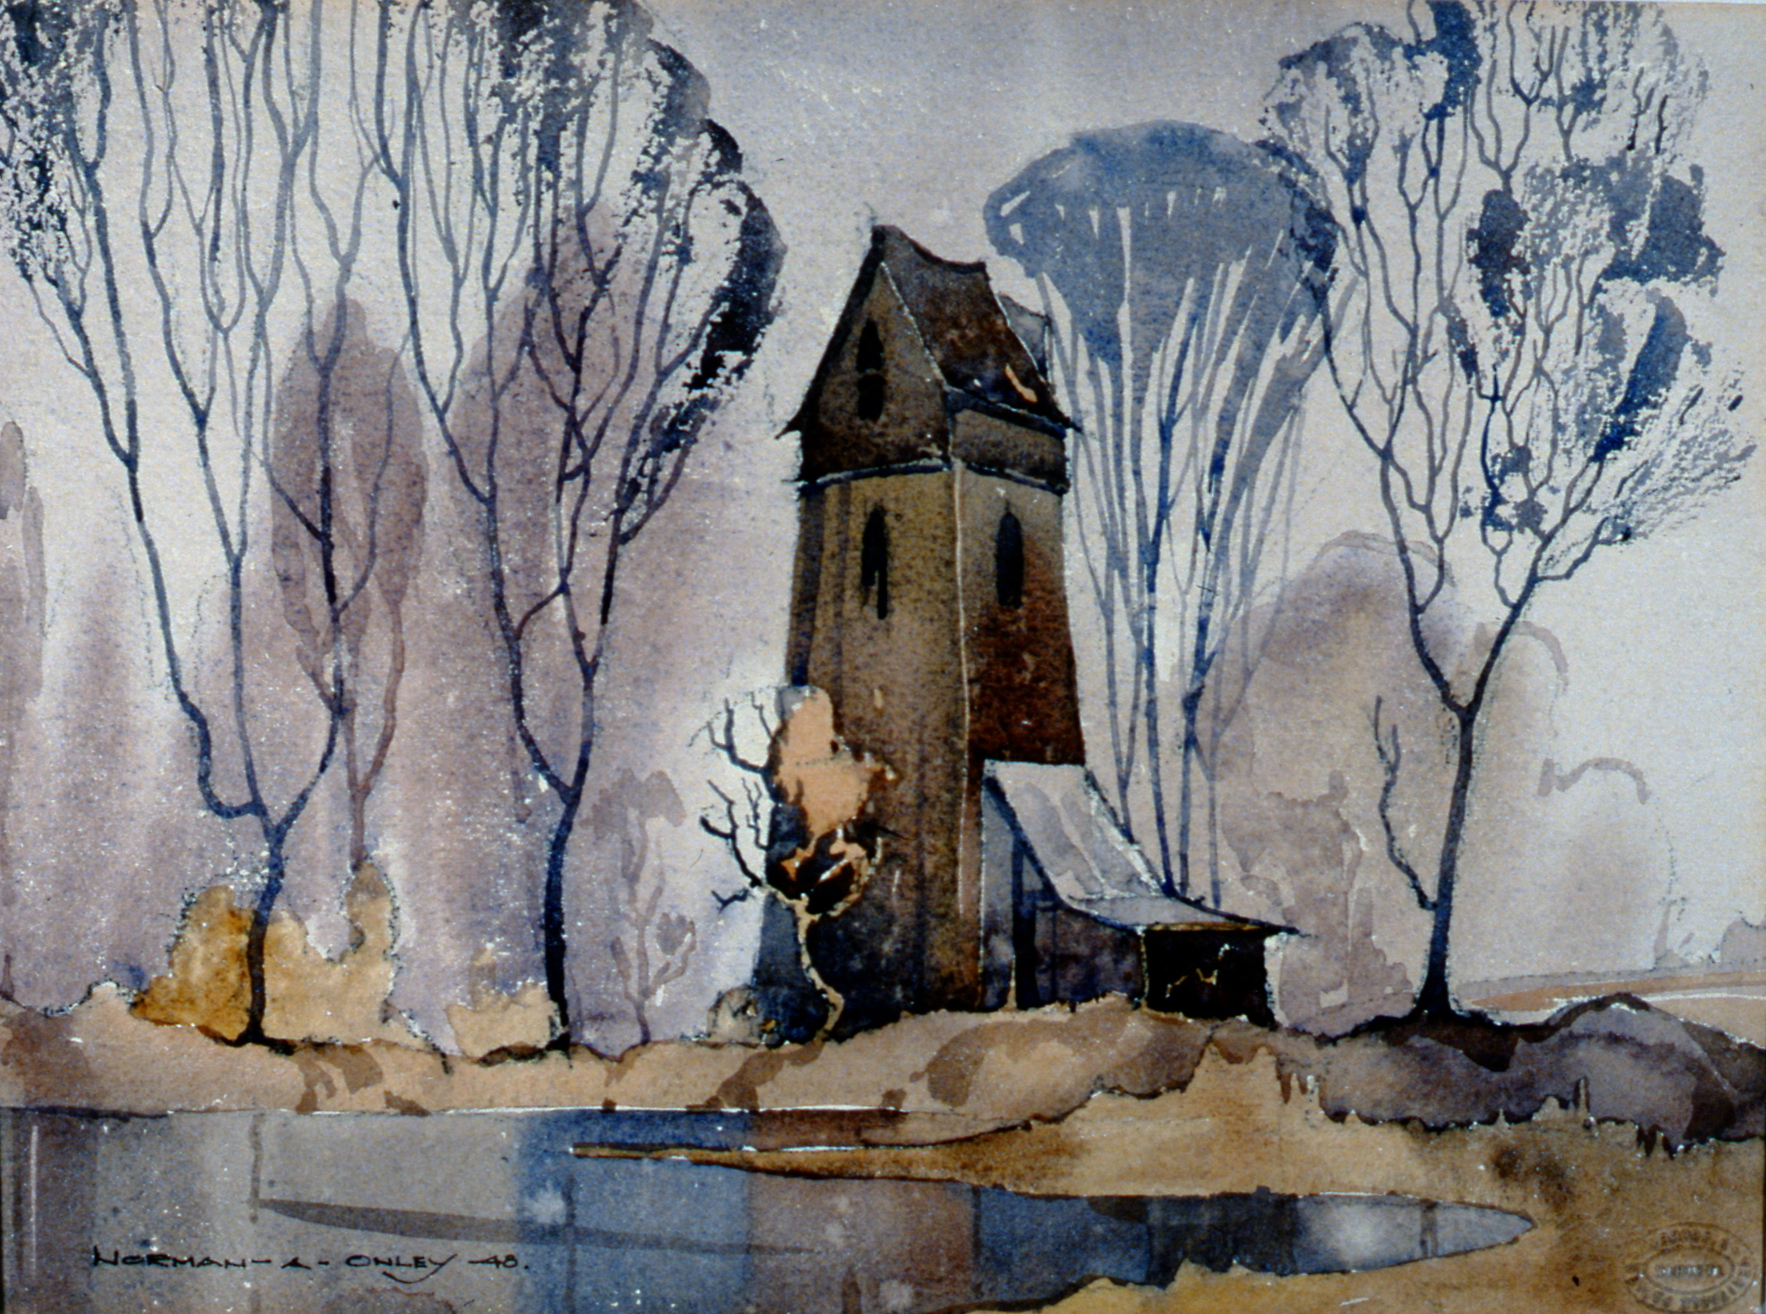 Old Power House, Blair, Ireland , 1948, Toni Onley, watercolour on watercolour paper, 28 cm x 38 cm, 2002.07.02. Gift of Katherine Lytle.